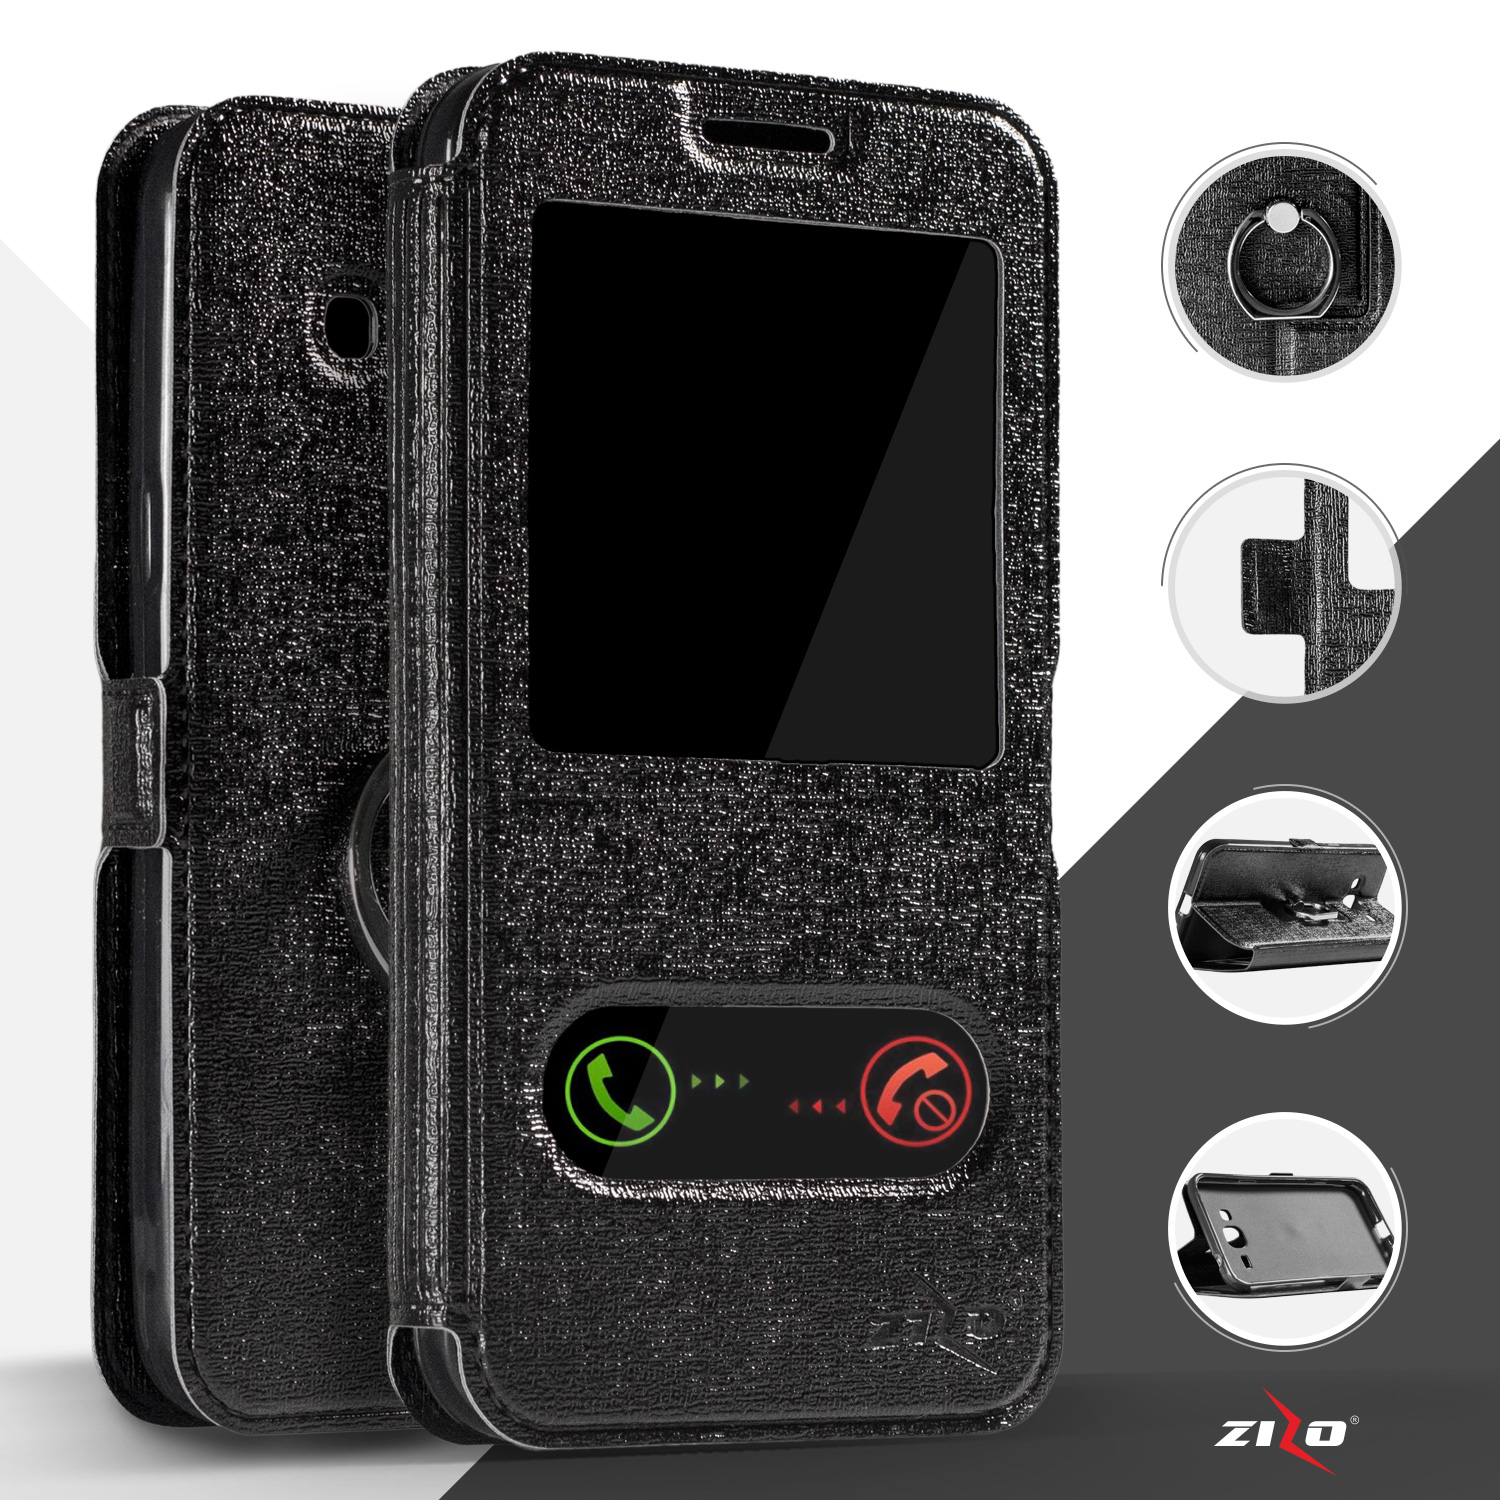 Moonmini Case For Lg Stylus 2 G Stylo Ls775 Shockproof Dual Smartphone 16gb K520dy Zizoreg Window Pouch Wallet Tpu Cover Inside Pu Leather